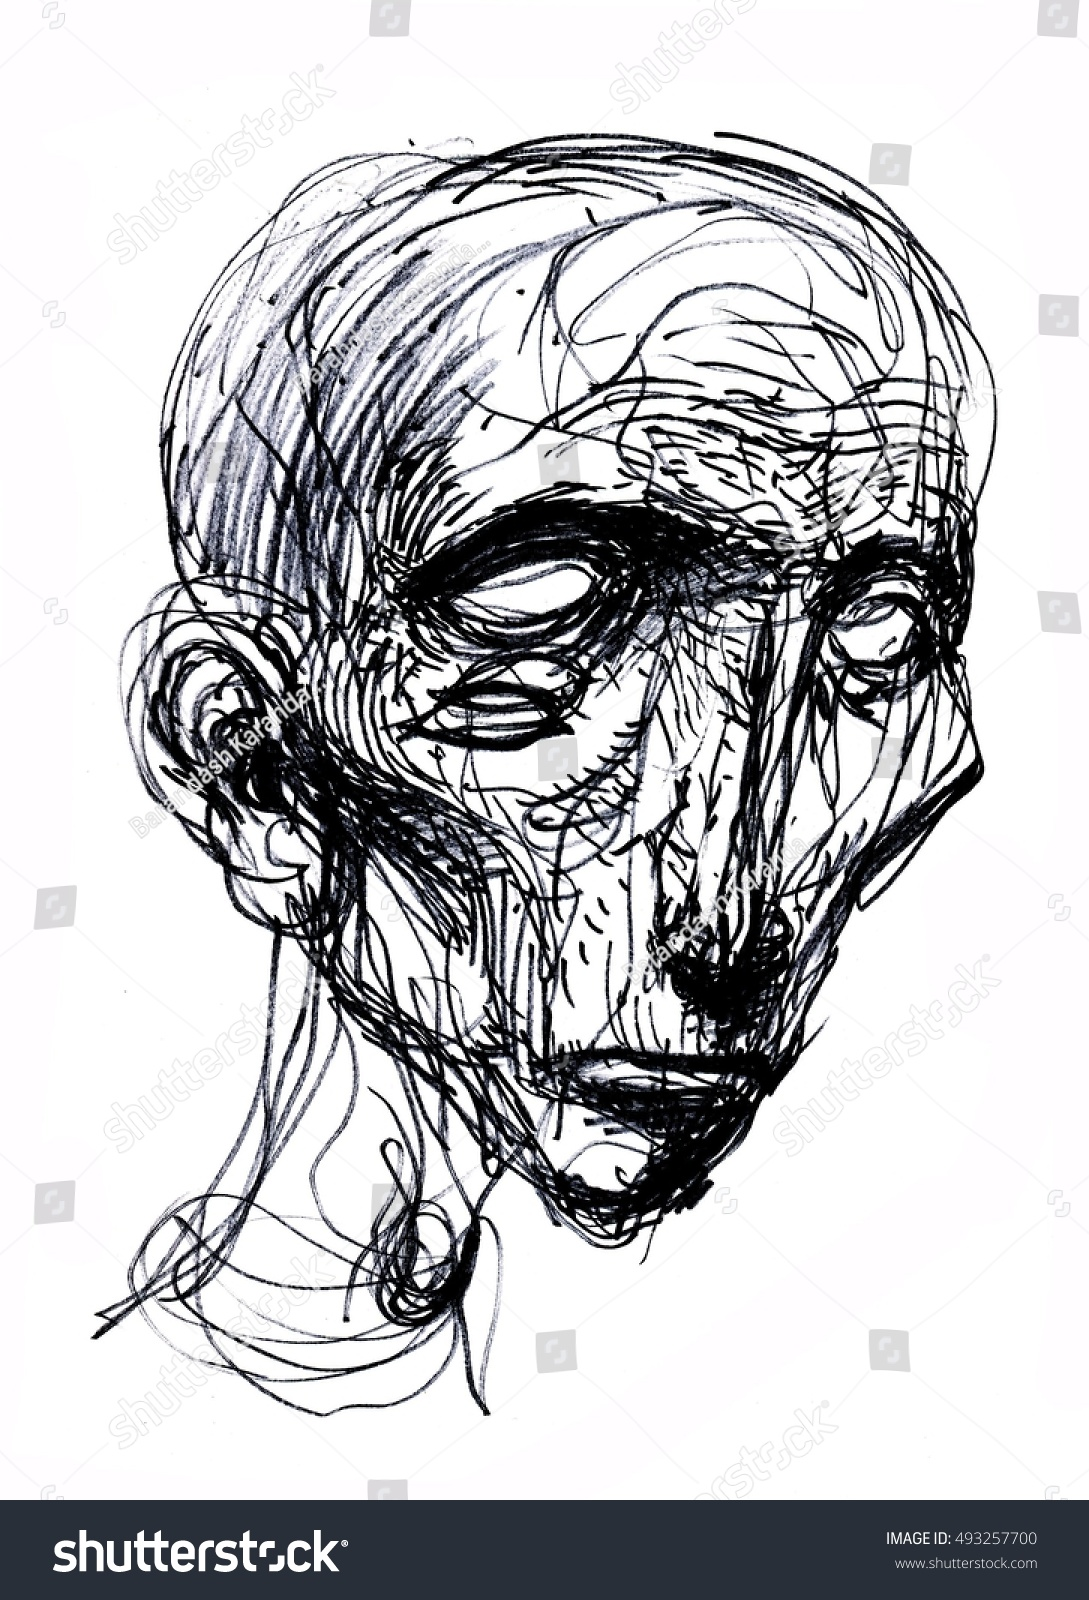 Abstract face portrait sketch art hand drawn illustration